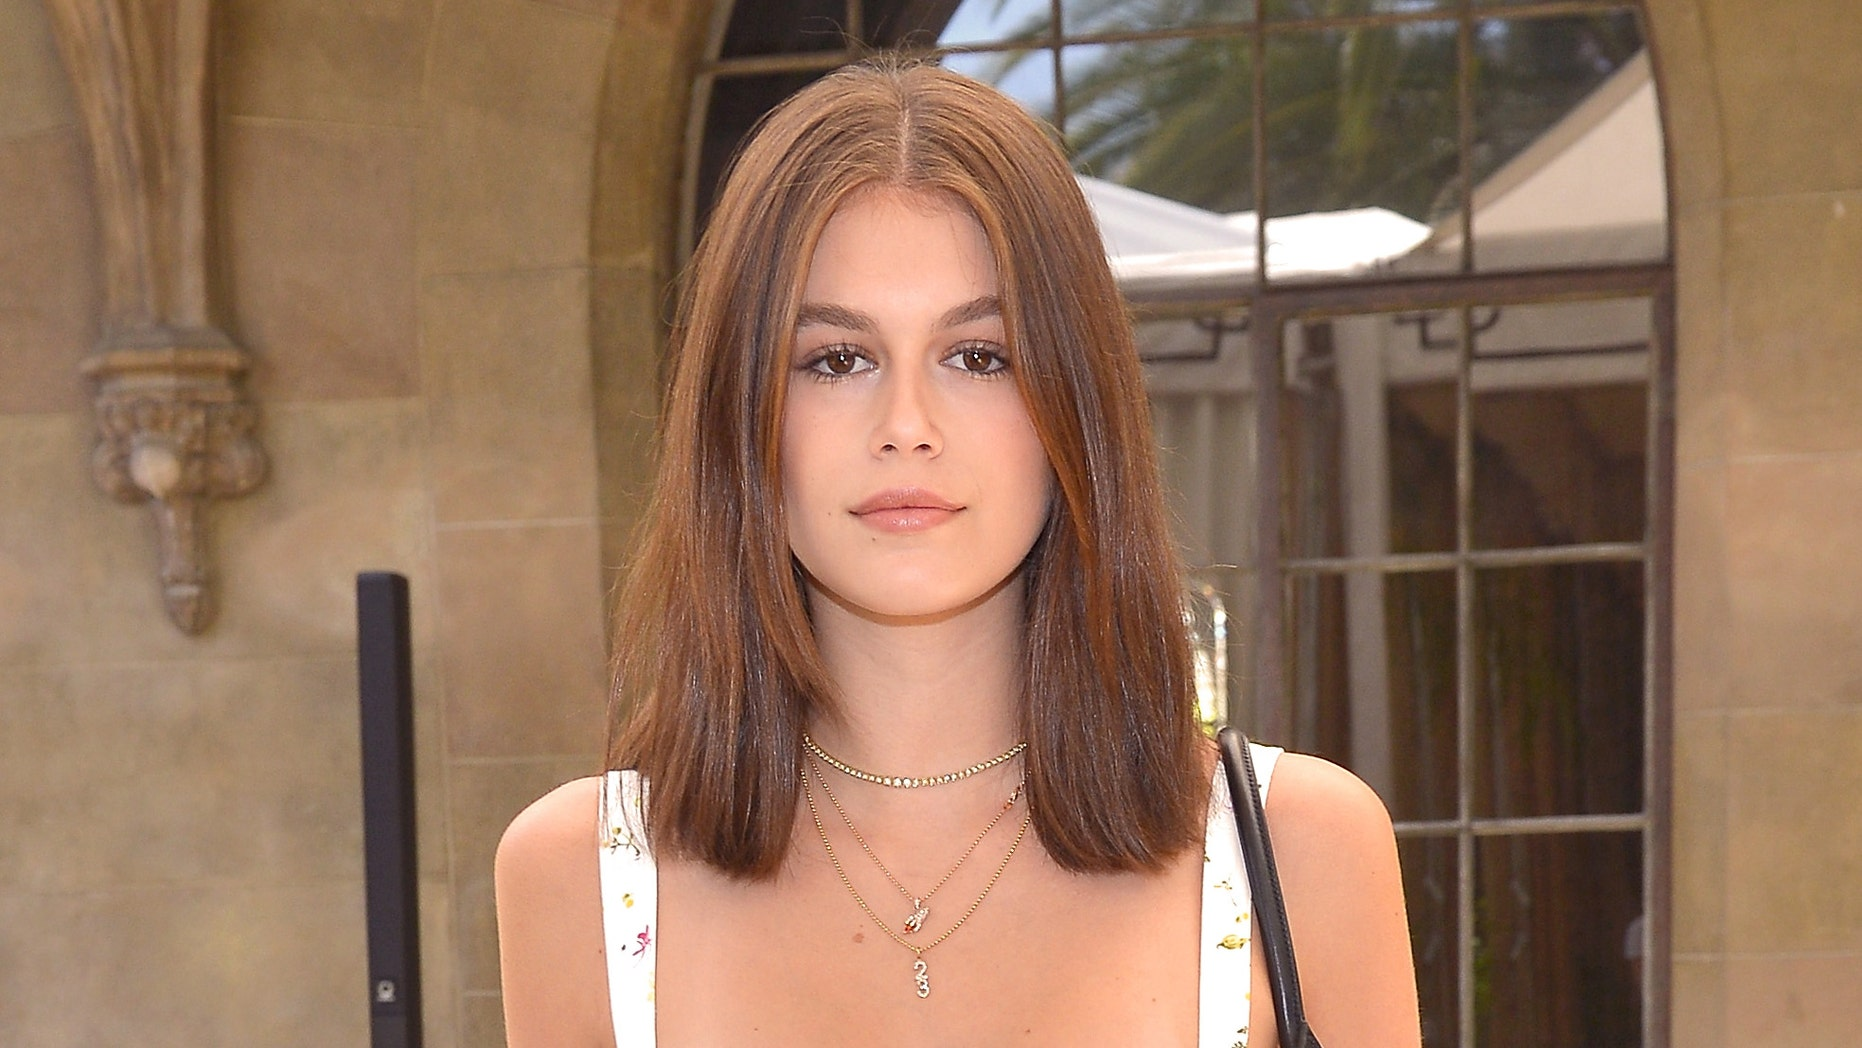 Kaia Gerber recently debuted a bold new hairstyle.